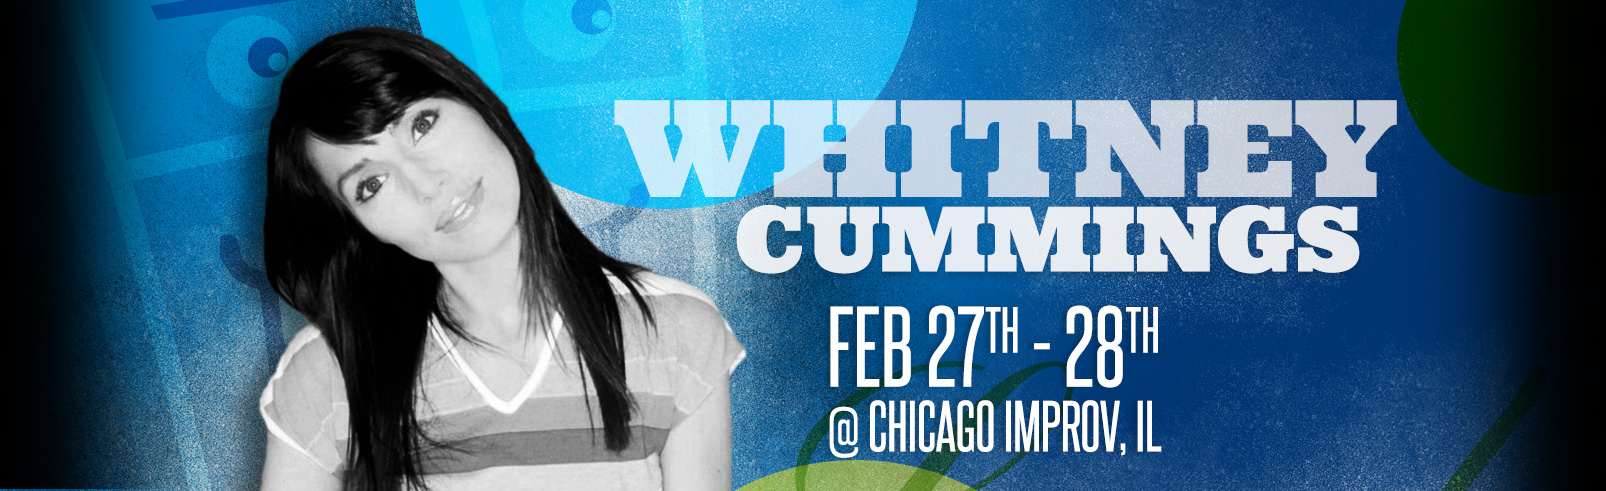 Whitney Cummings @ Chicago Improv